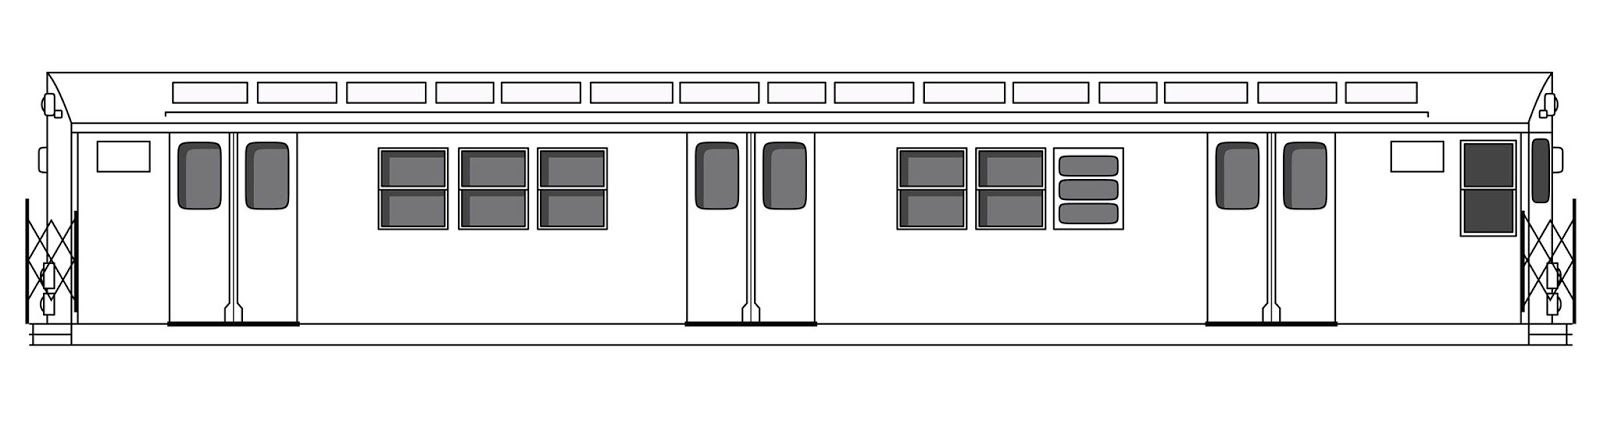 blen167 nyc train template by sade tcm